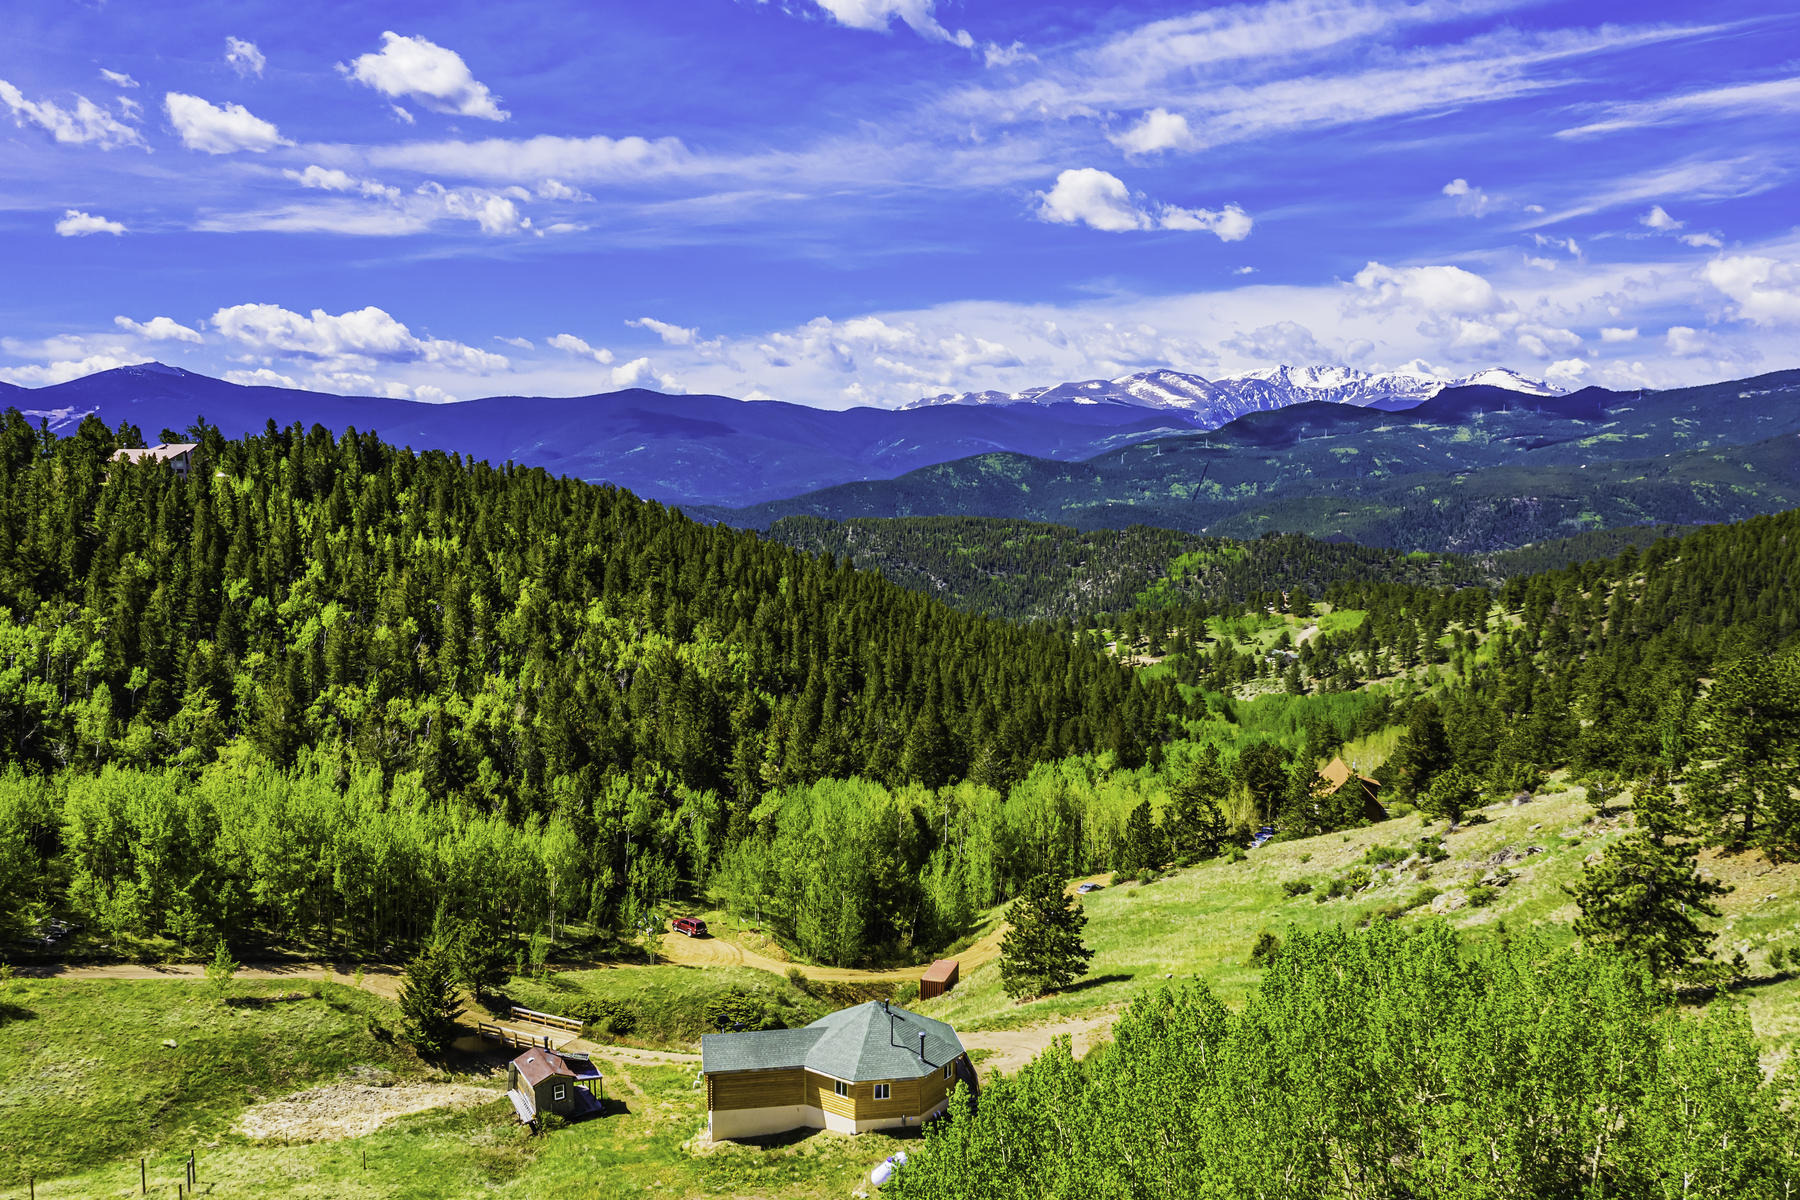 Single Family Homes for Active at Off the grid, Away from it all, and Out of this World Views! 481 Red Tail Ridge Road Idaho Springs, Colorado 80452 United States